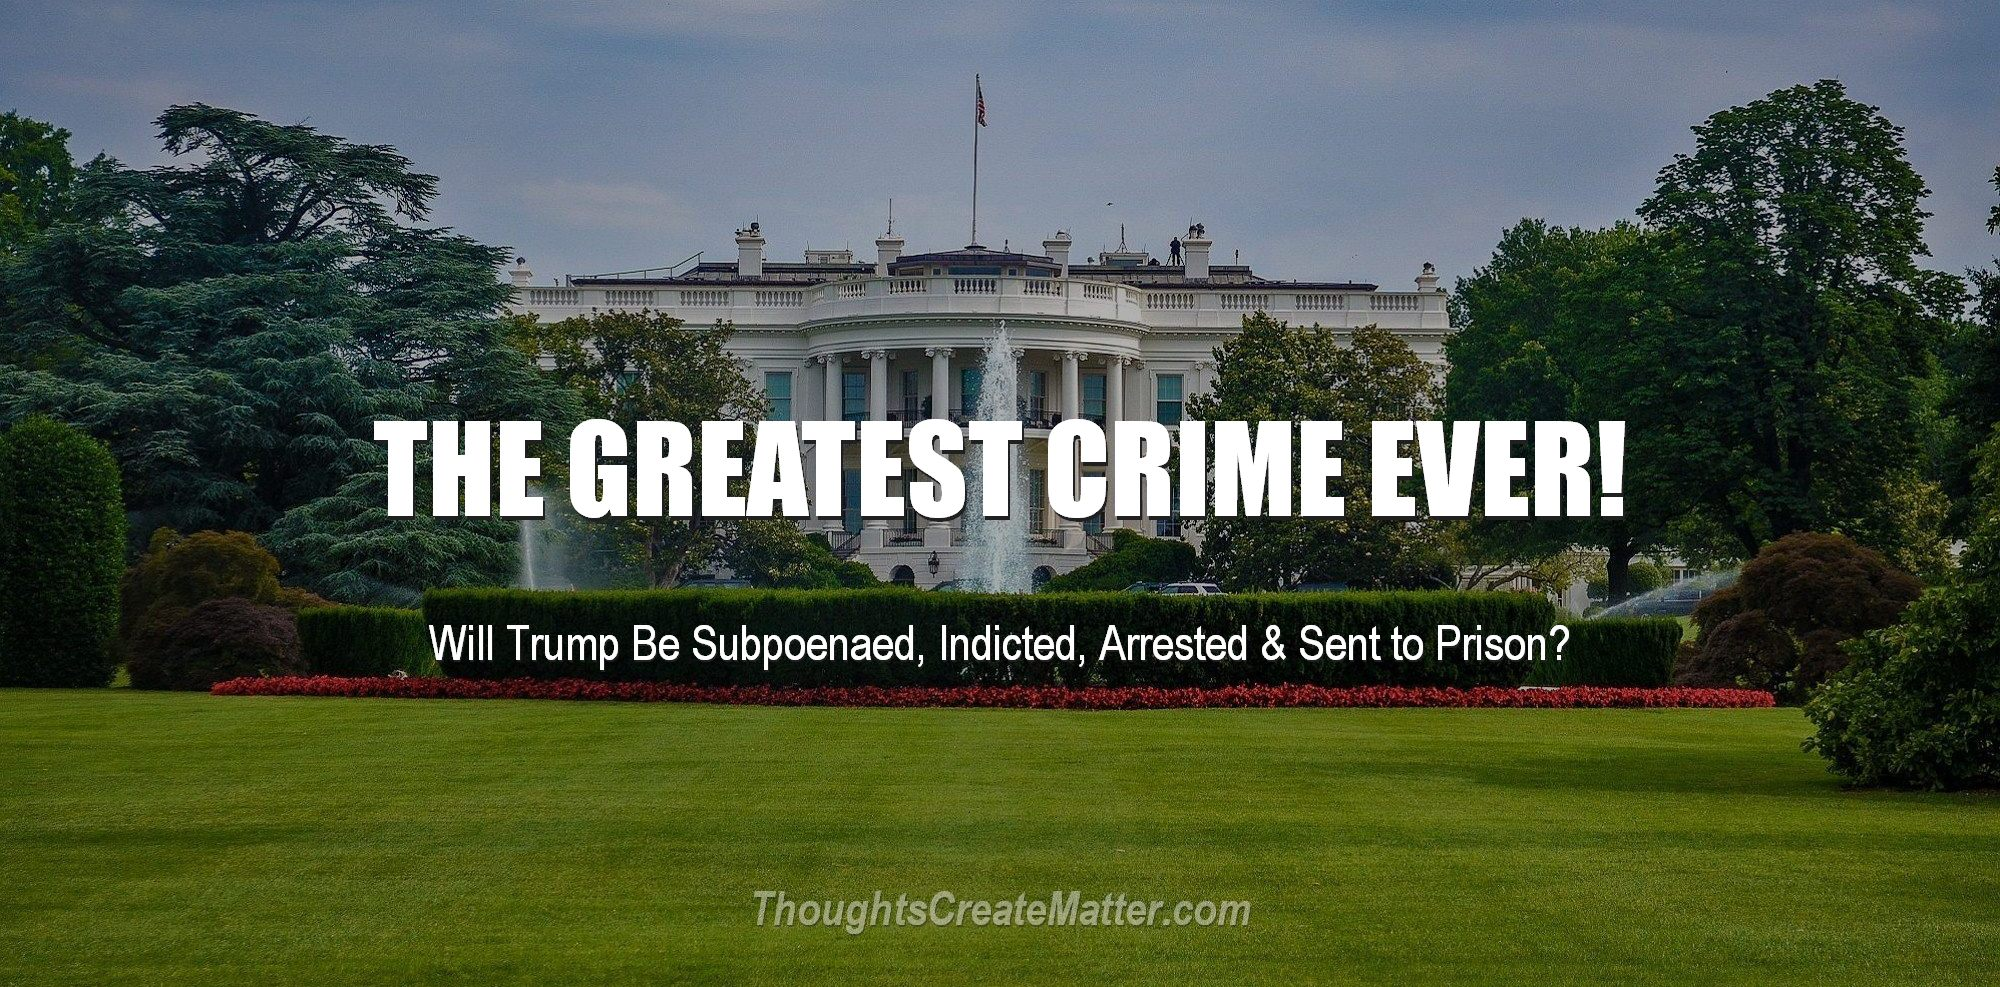 Capitol where crime happened. Trump will be indicted, attested and jailed and sent to prison.